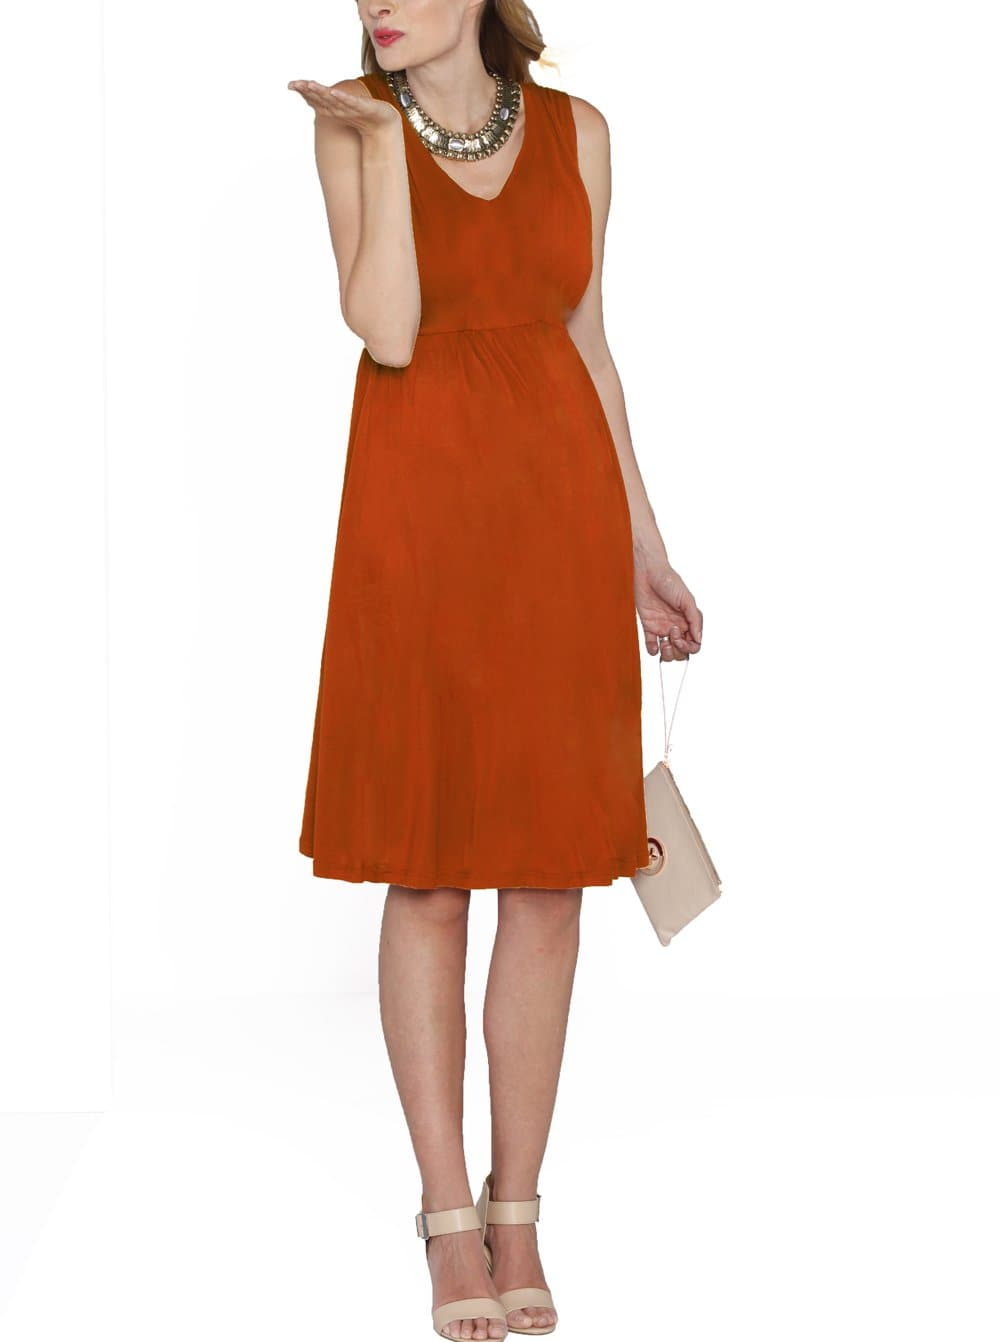 Maternity Ultimate Comfortable Knee Length Dress - Dark Tangerine - Angel Maternity - Maternity clothes - shop online